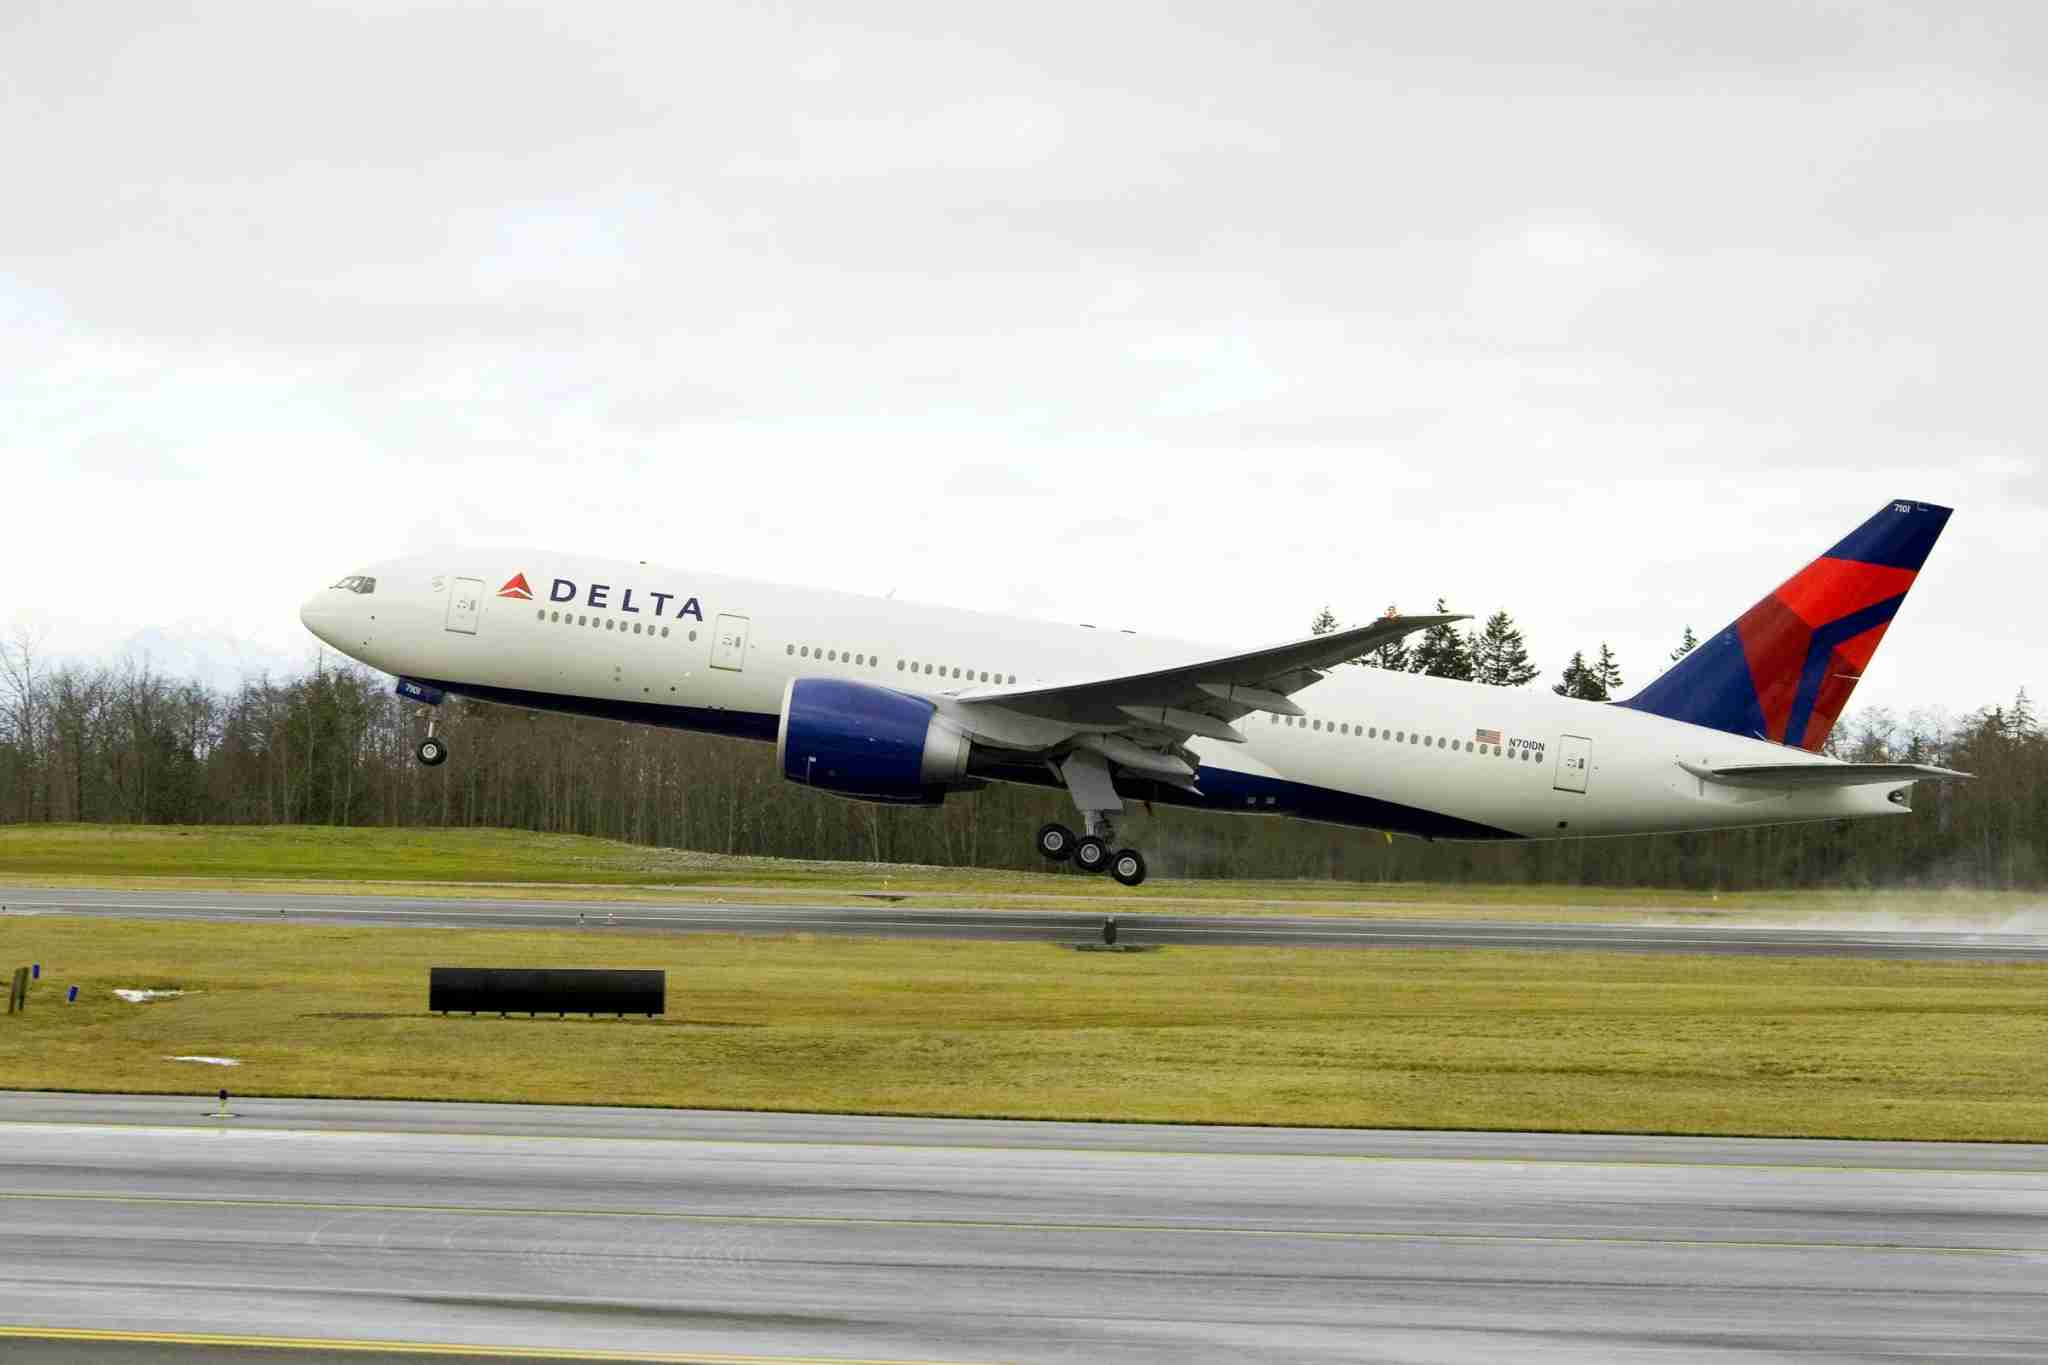 Delta Boeing 777-200LR taking off (Photo courtesy of Delta Air Lines)